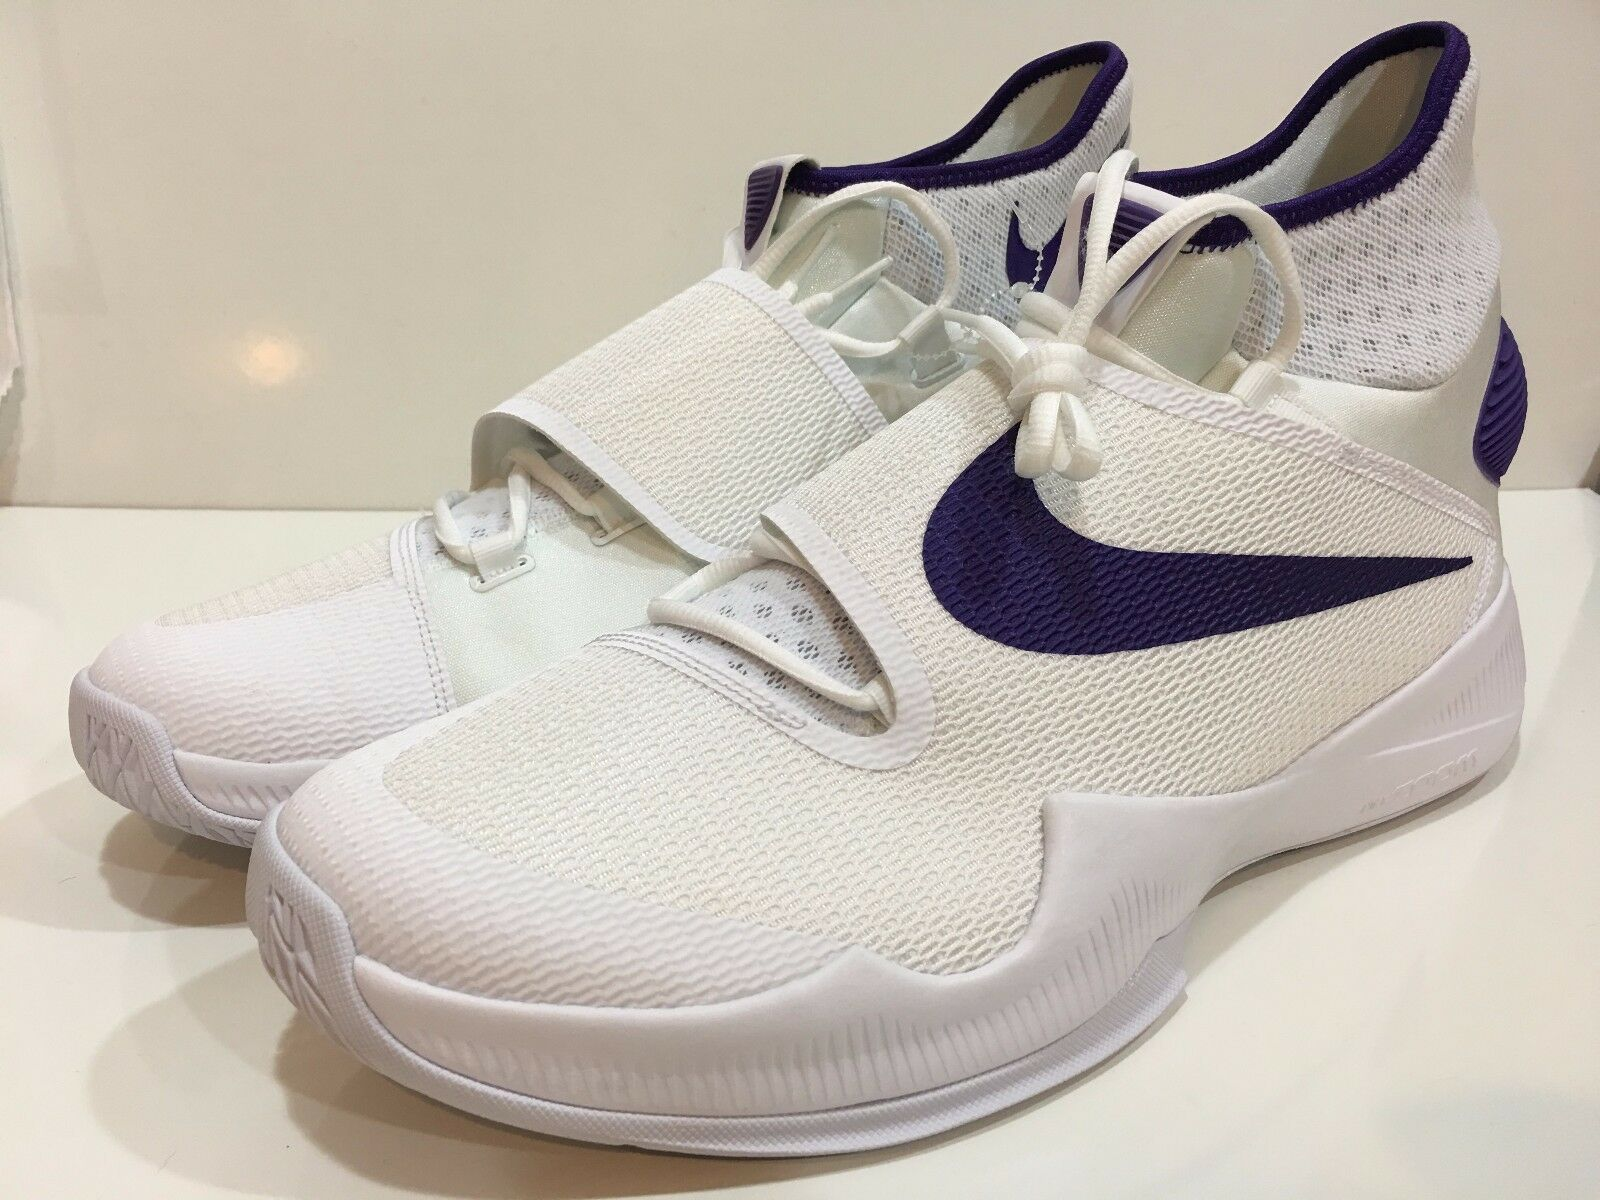 Nike Zoom Hyperrev Men's Basketball Athletic Shoes Comfortable best-selling model of the brand